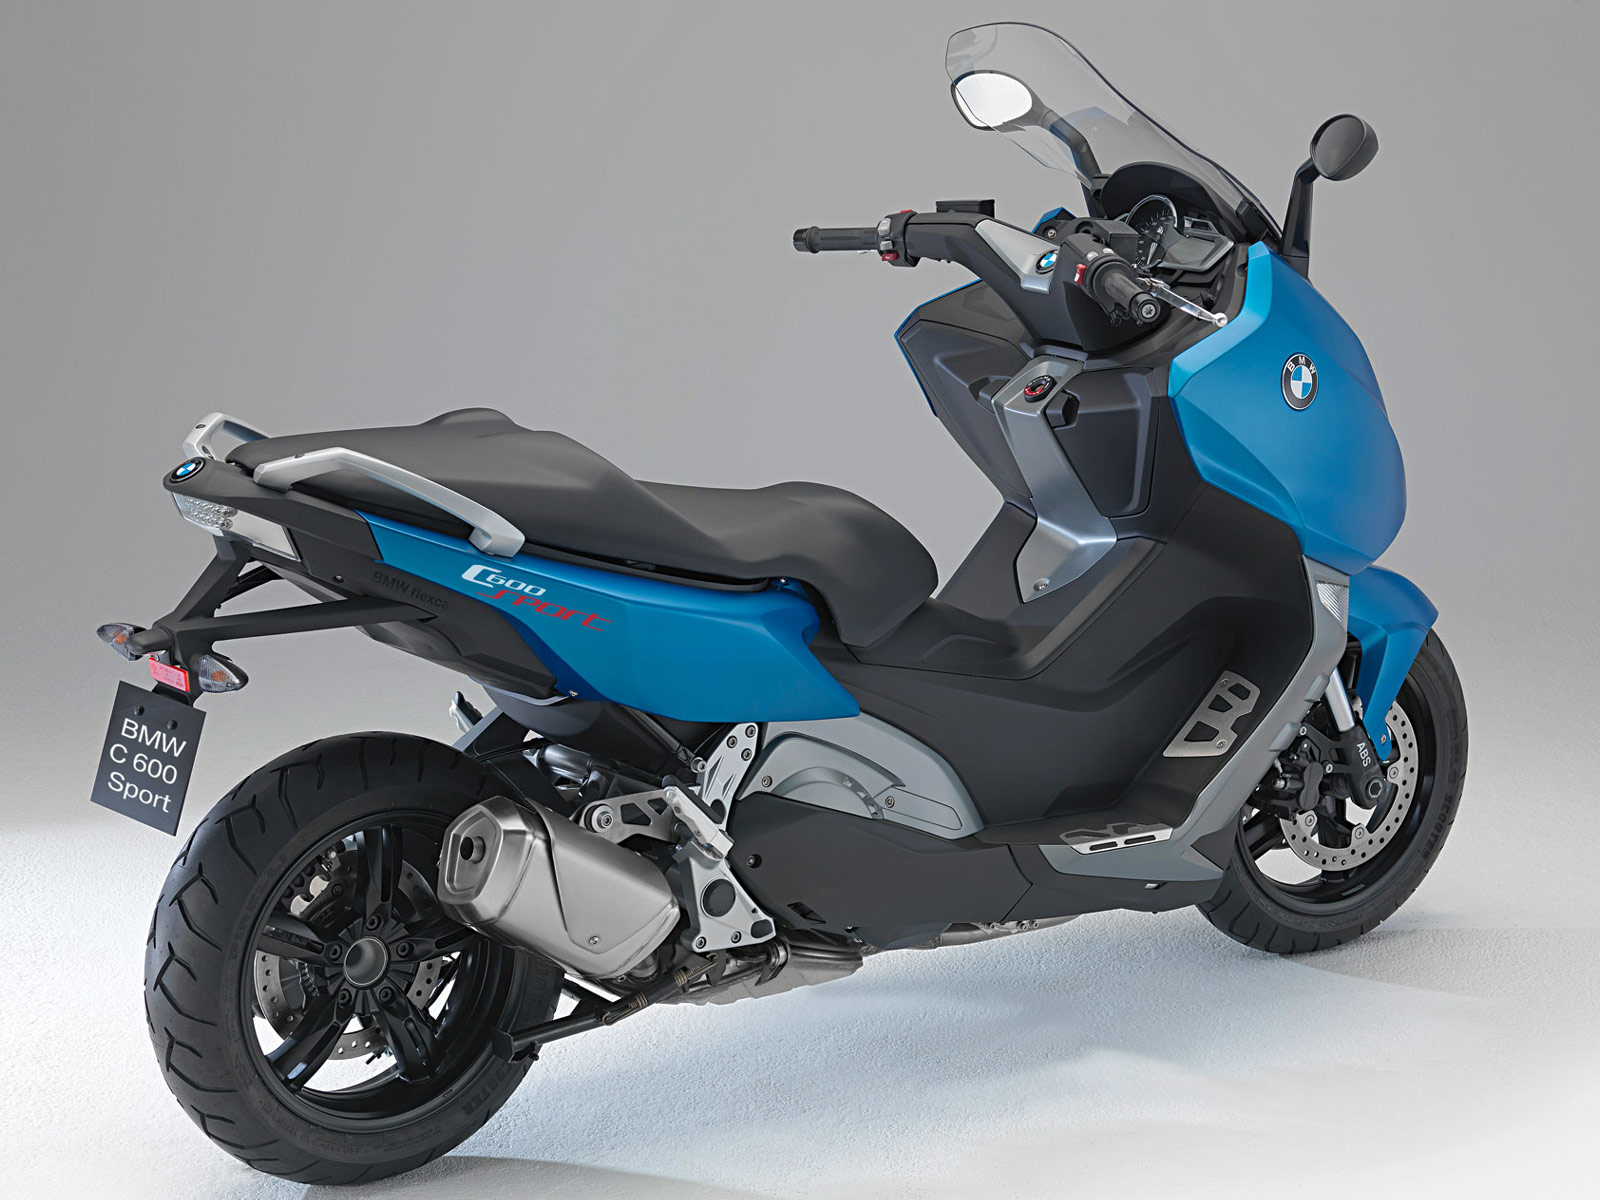 2012 bmw c600 sport scooter pictures auto insurance. Black Bedroom Furniture Sets. Home Design Ideas